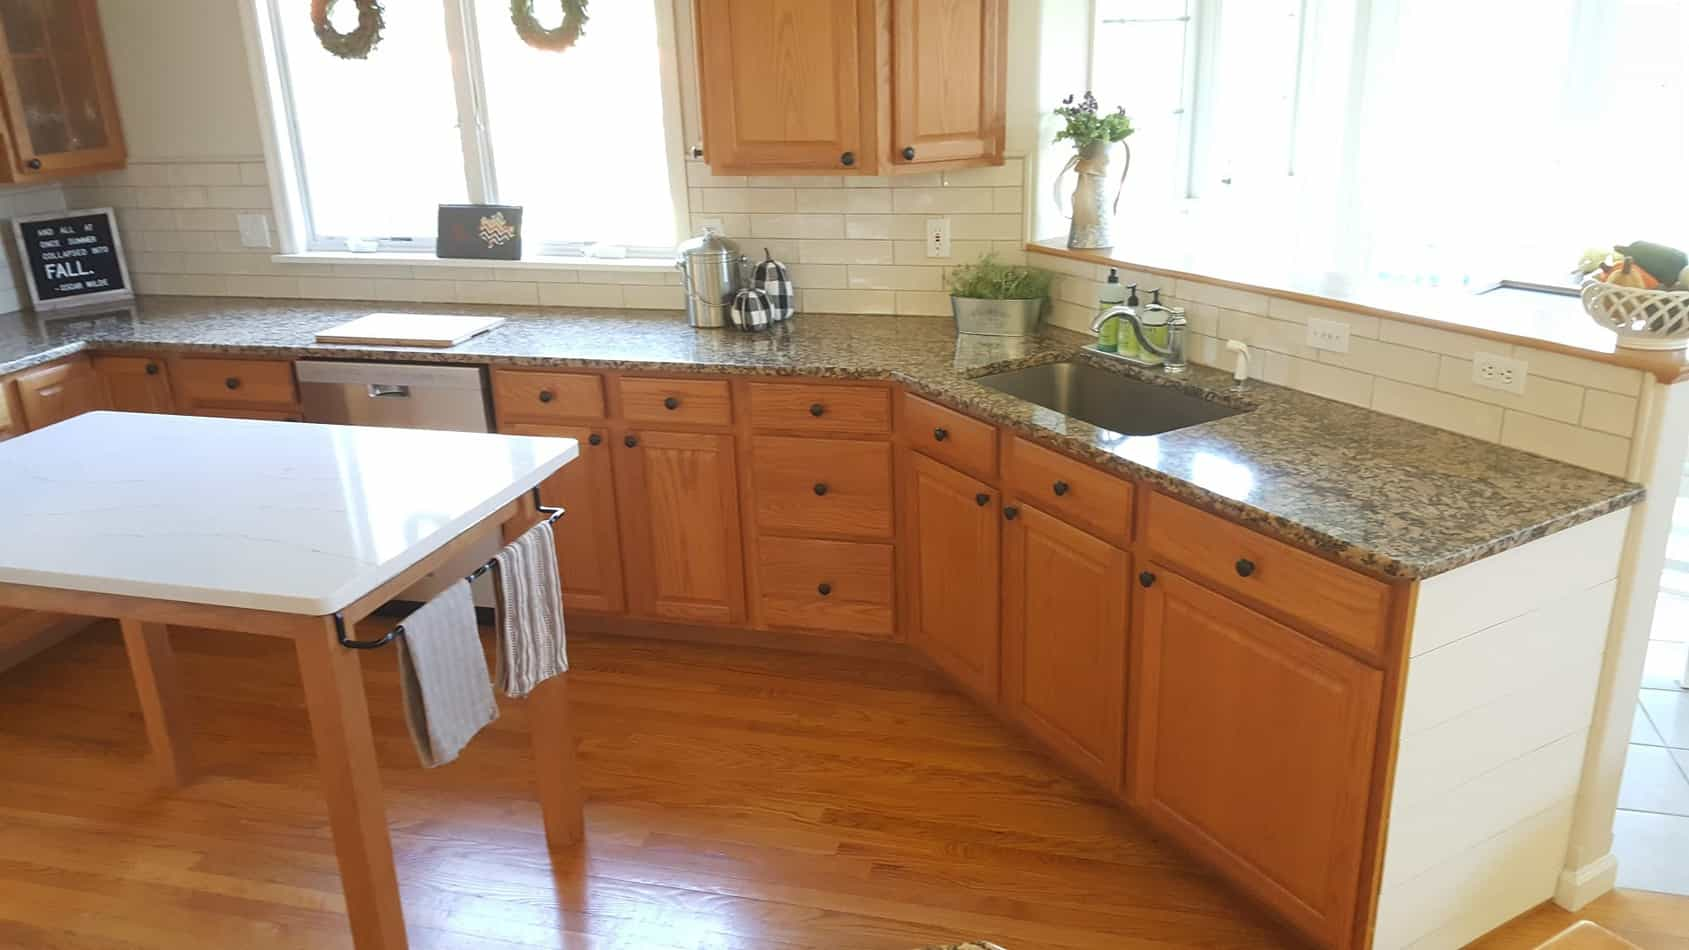 removable shiplap DIY update kitchen with oak cabinets without painting cabinets